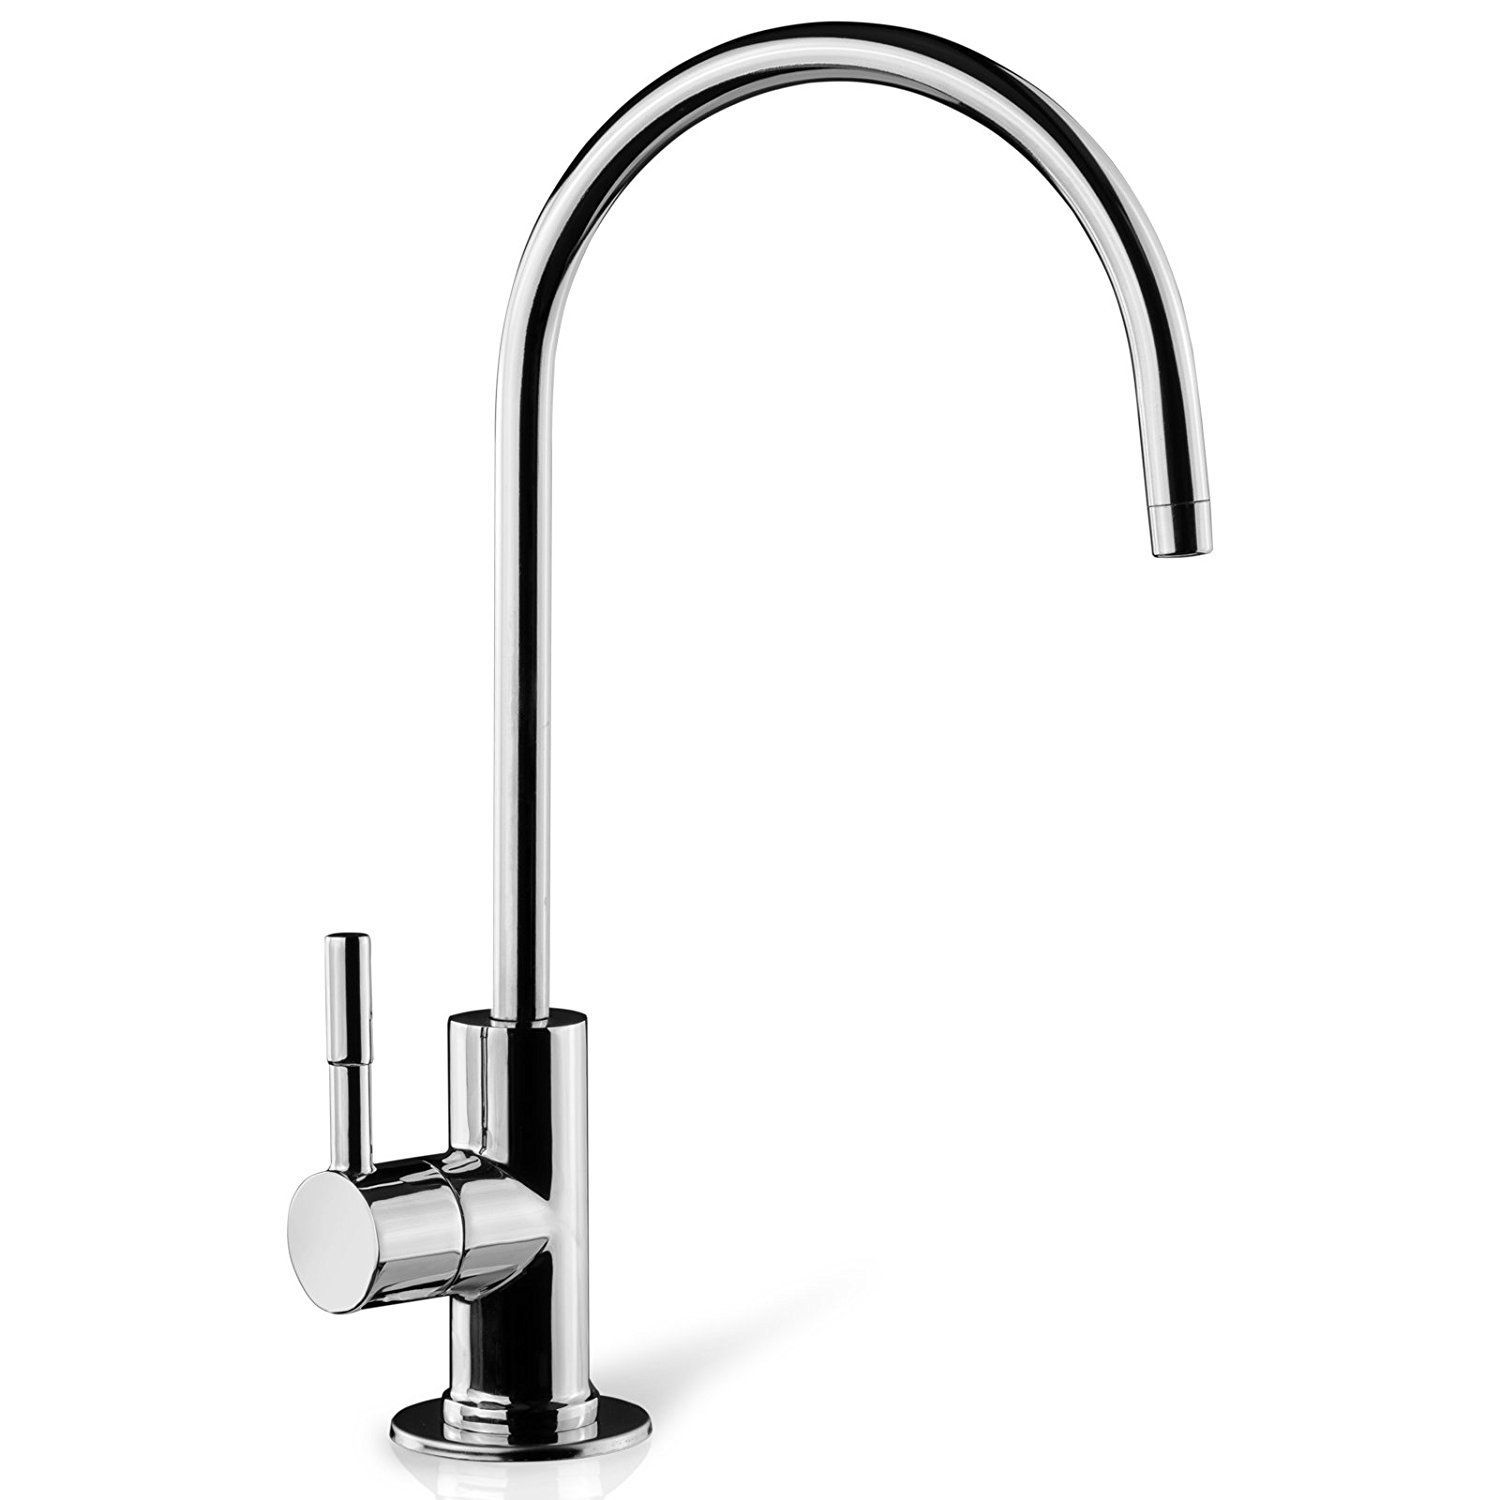 iSpring Drinking Water Faucet for RO Water Filtration System ...